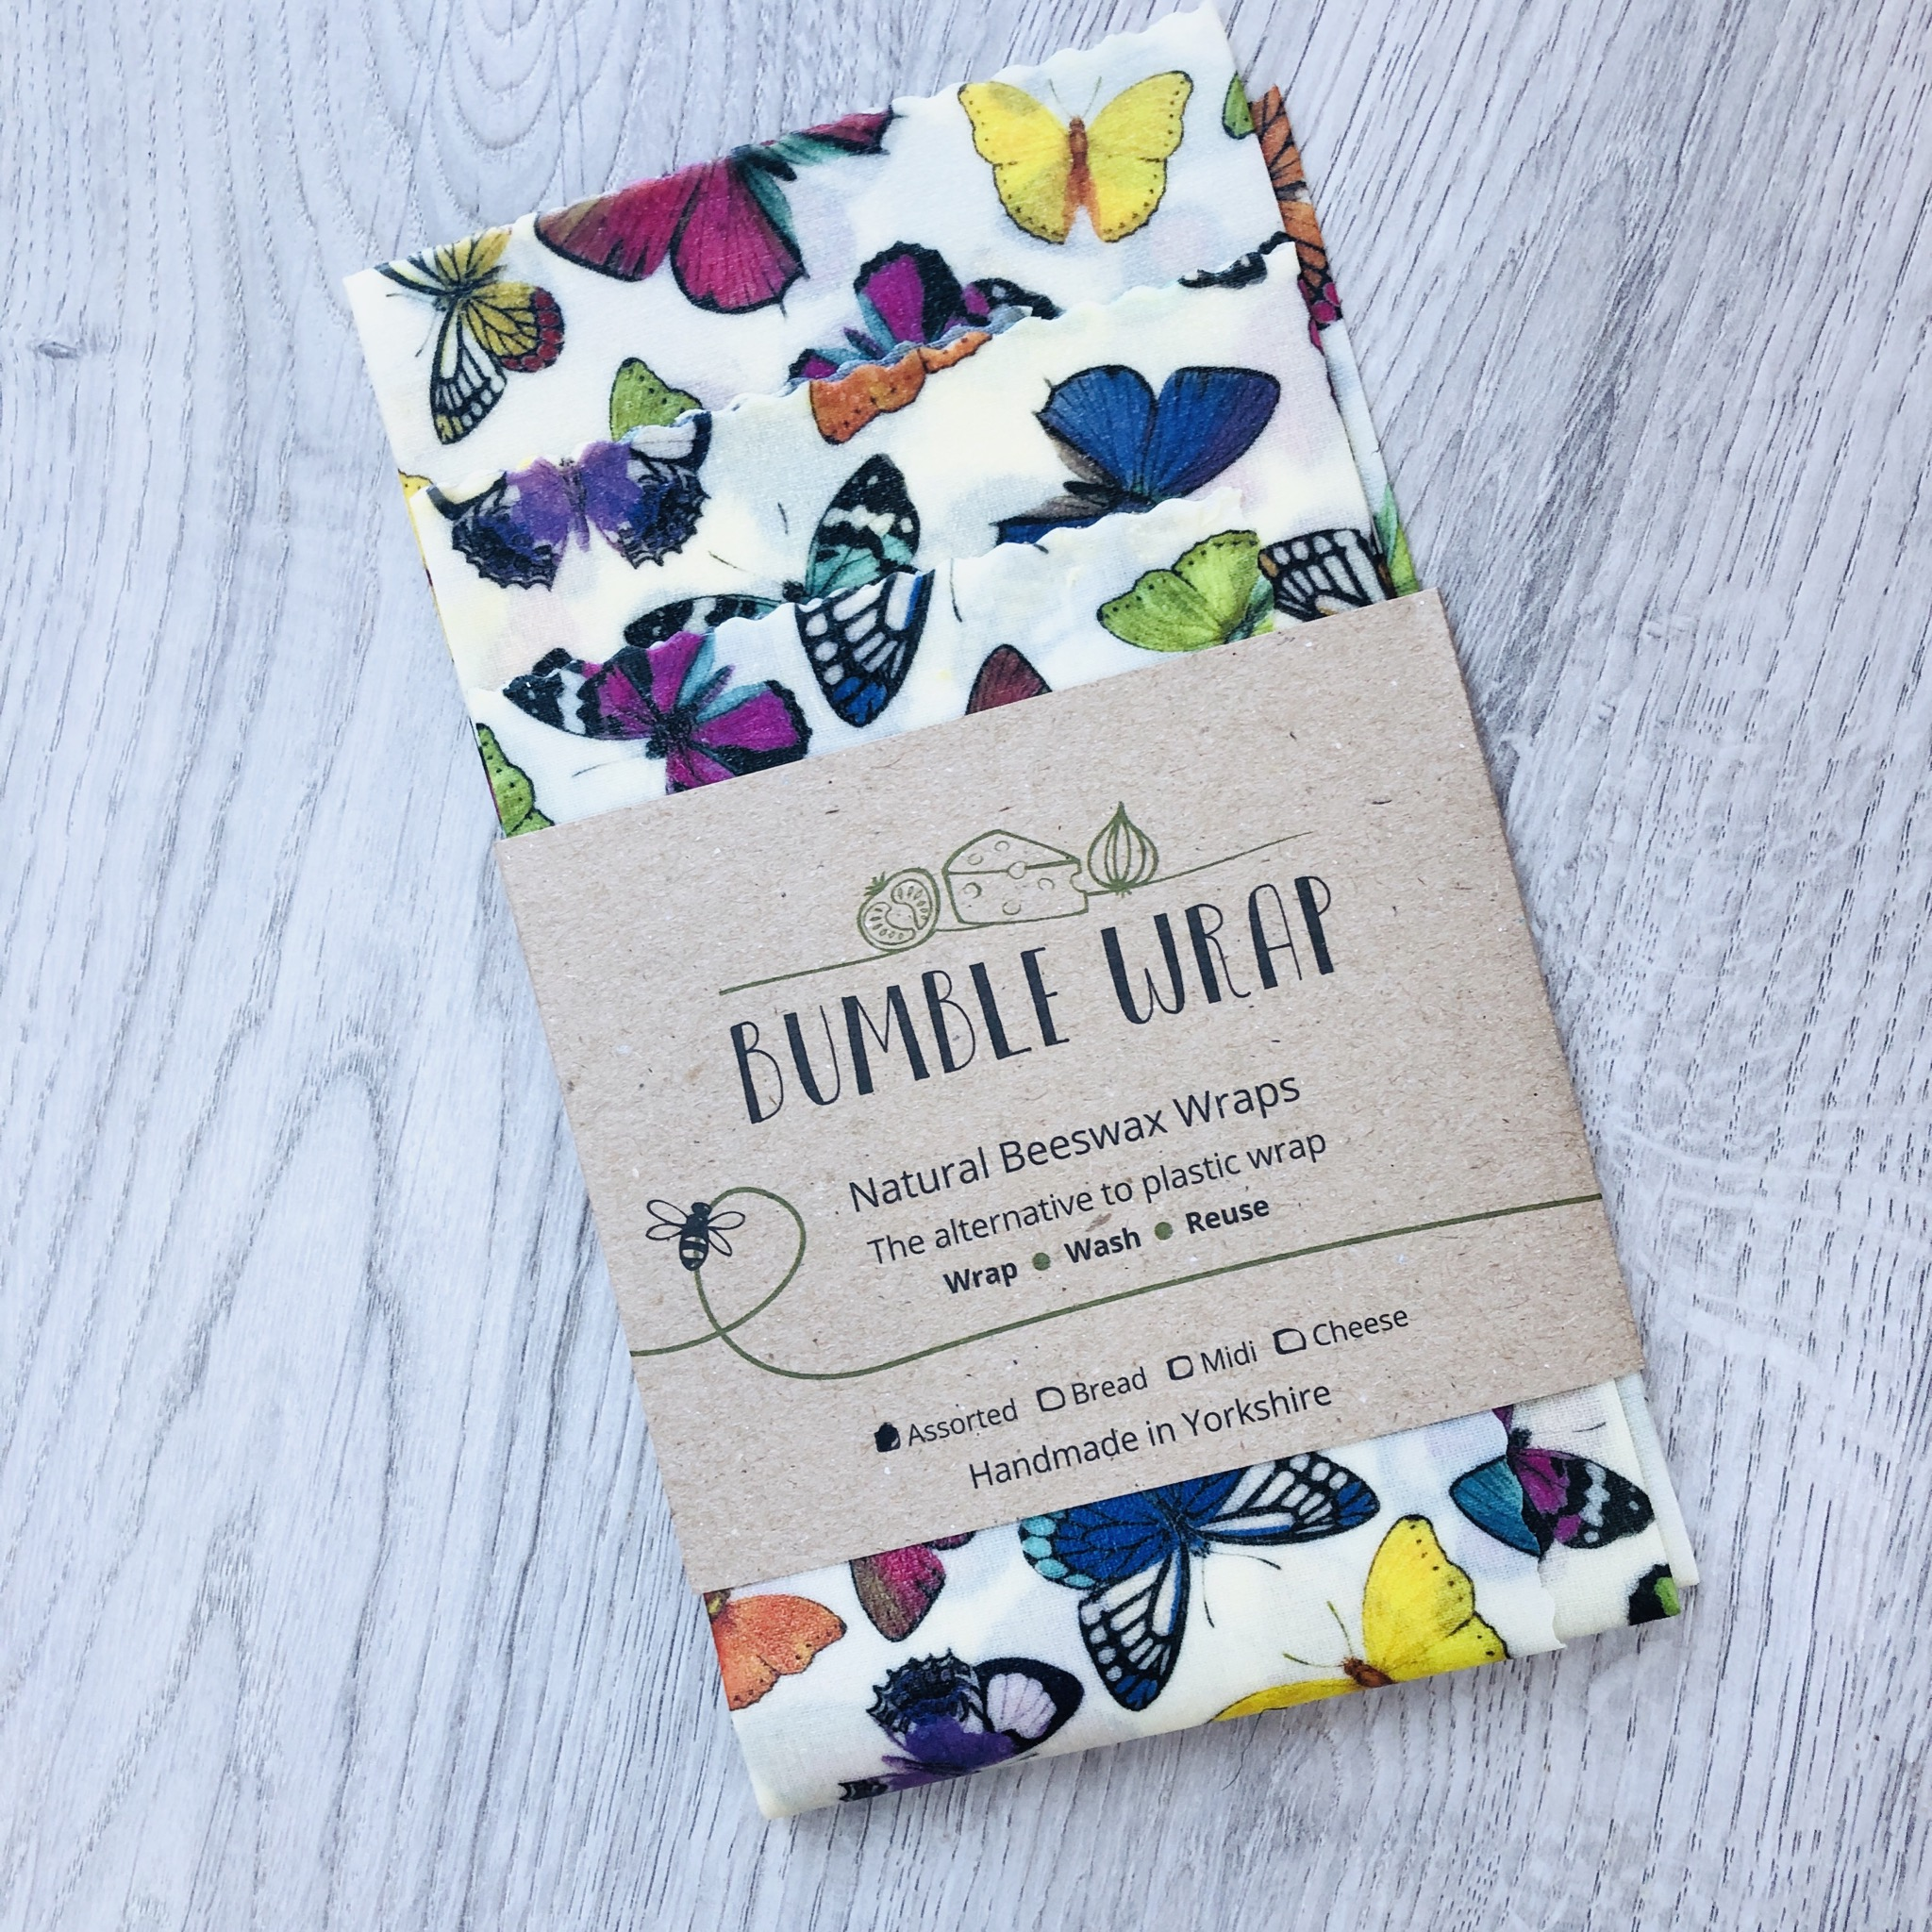 Bumble wrap, butterflies. Natural beeswax wraps